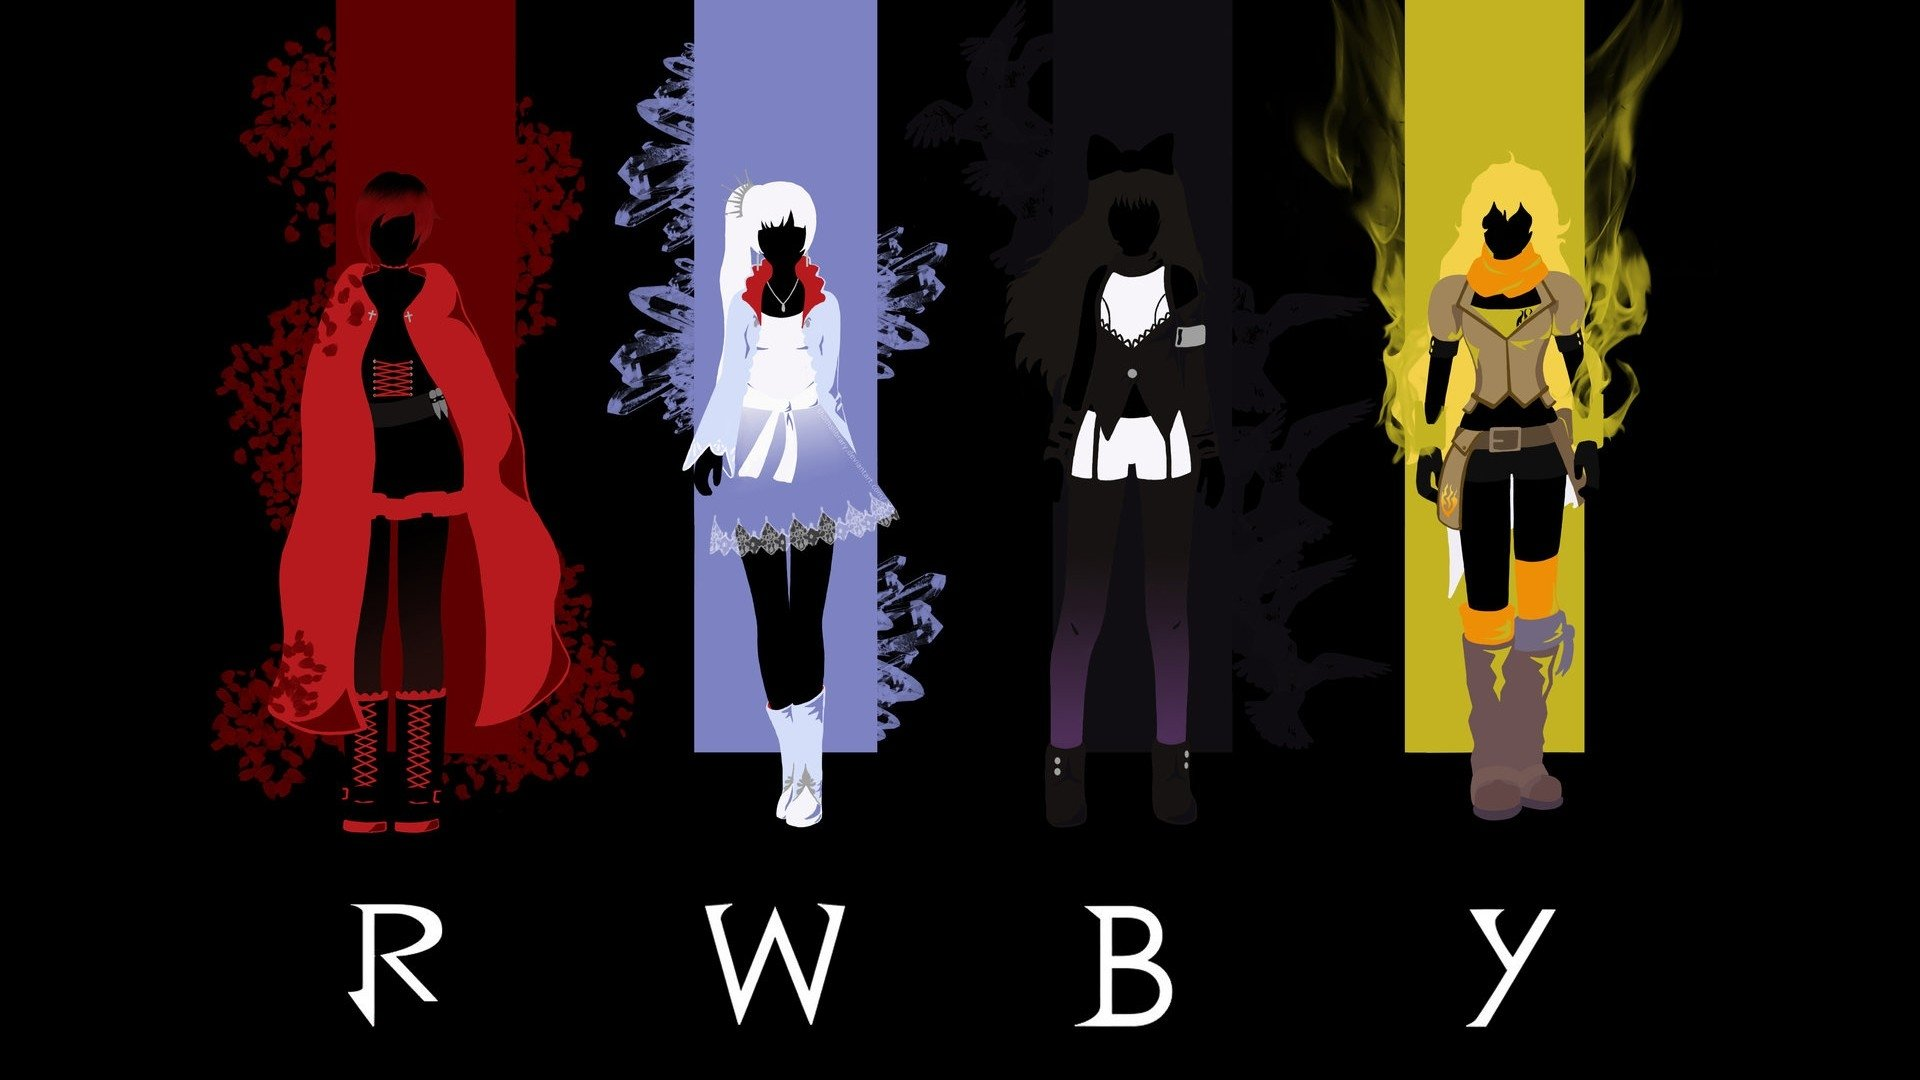 Rwby Hd Wallpaper Background Image 19x1080 Id 4541 Wallpaper Abyss